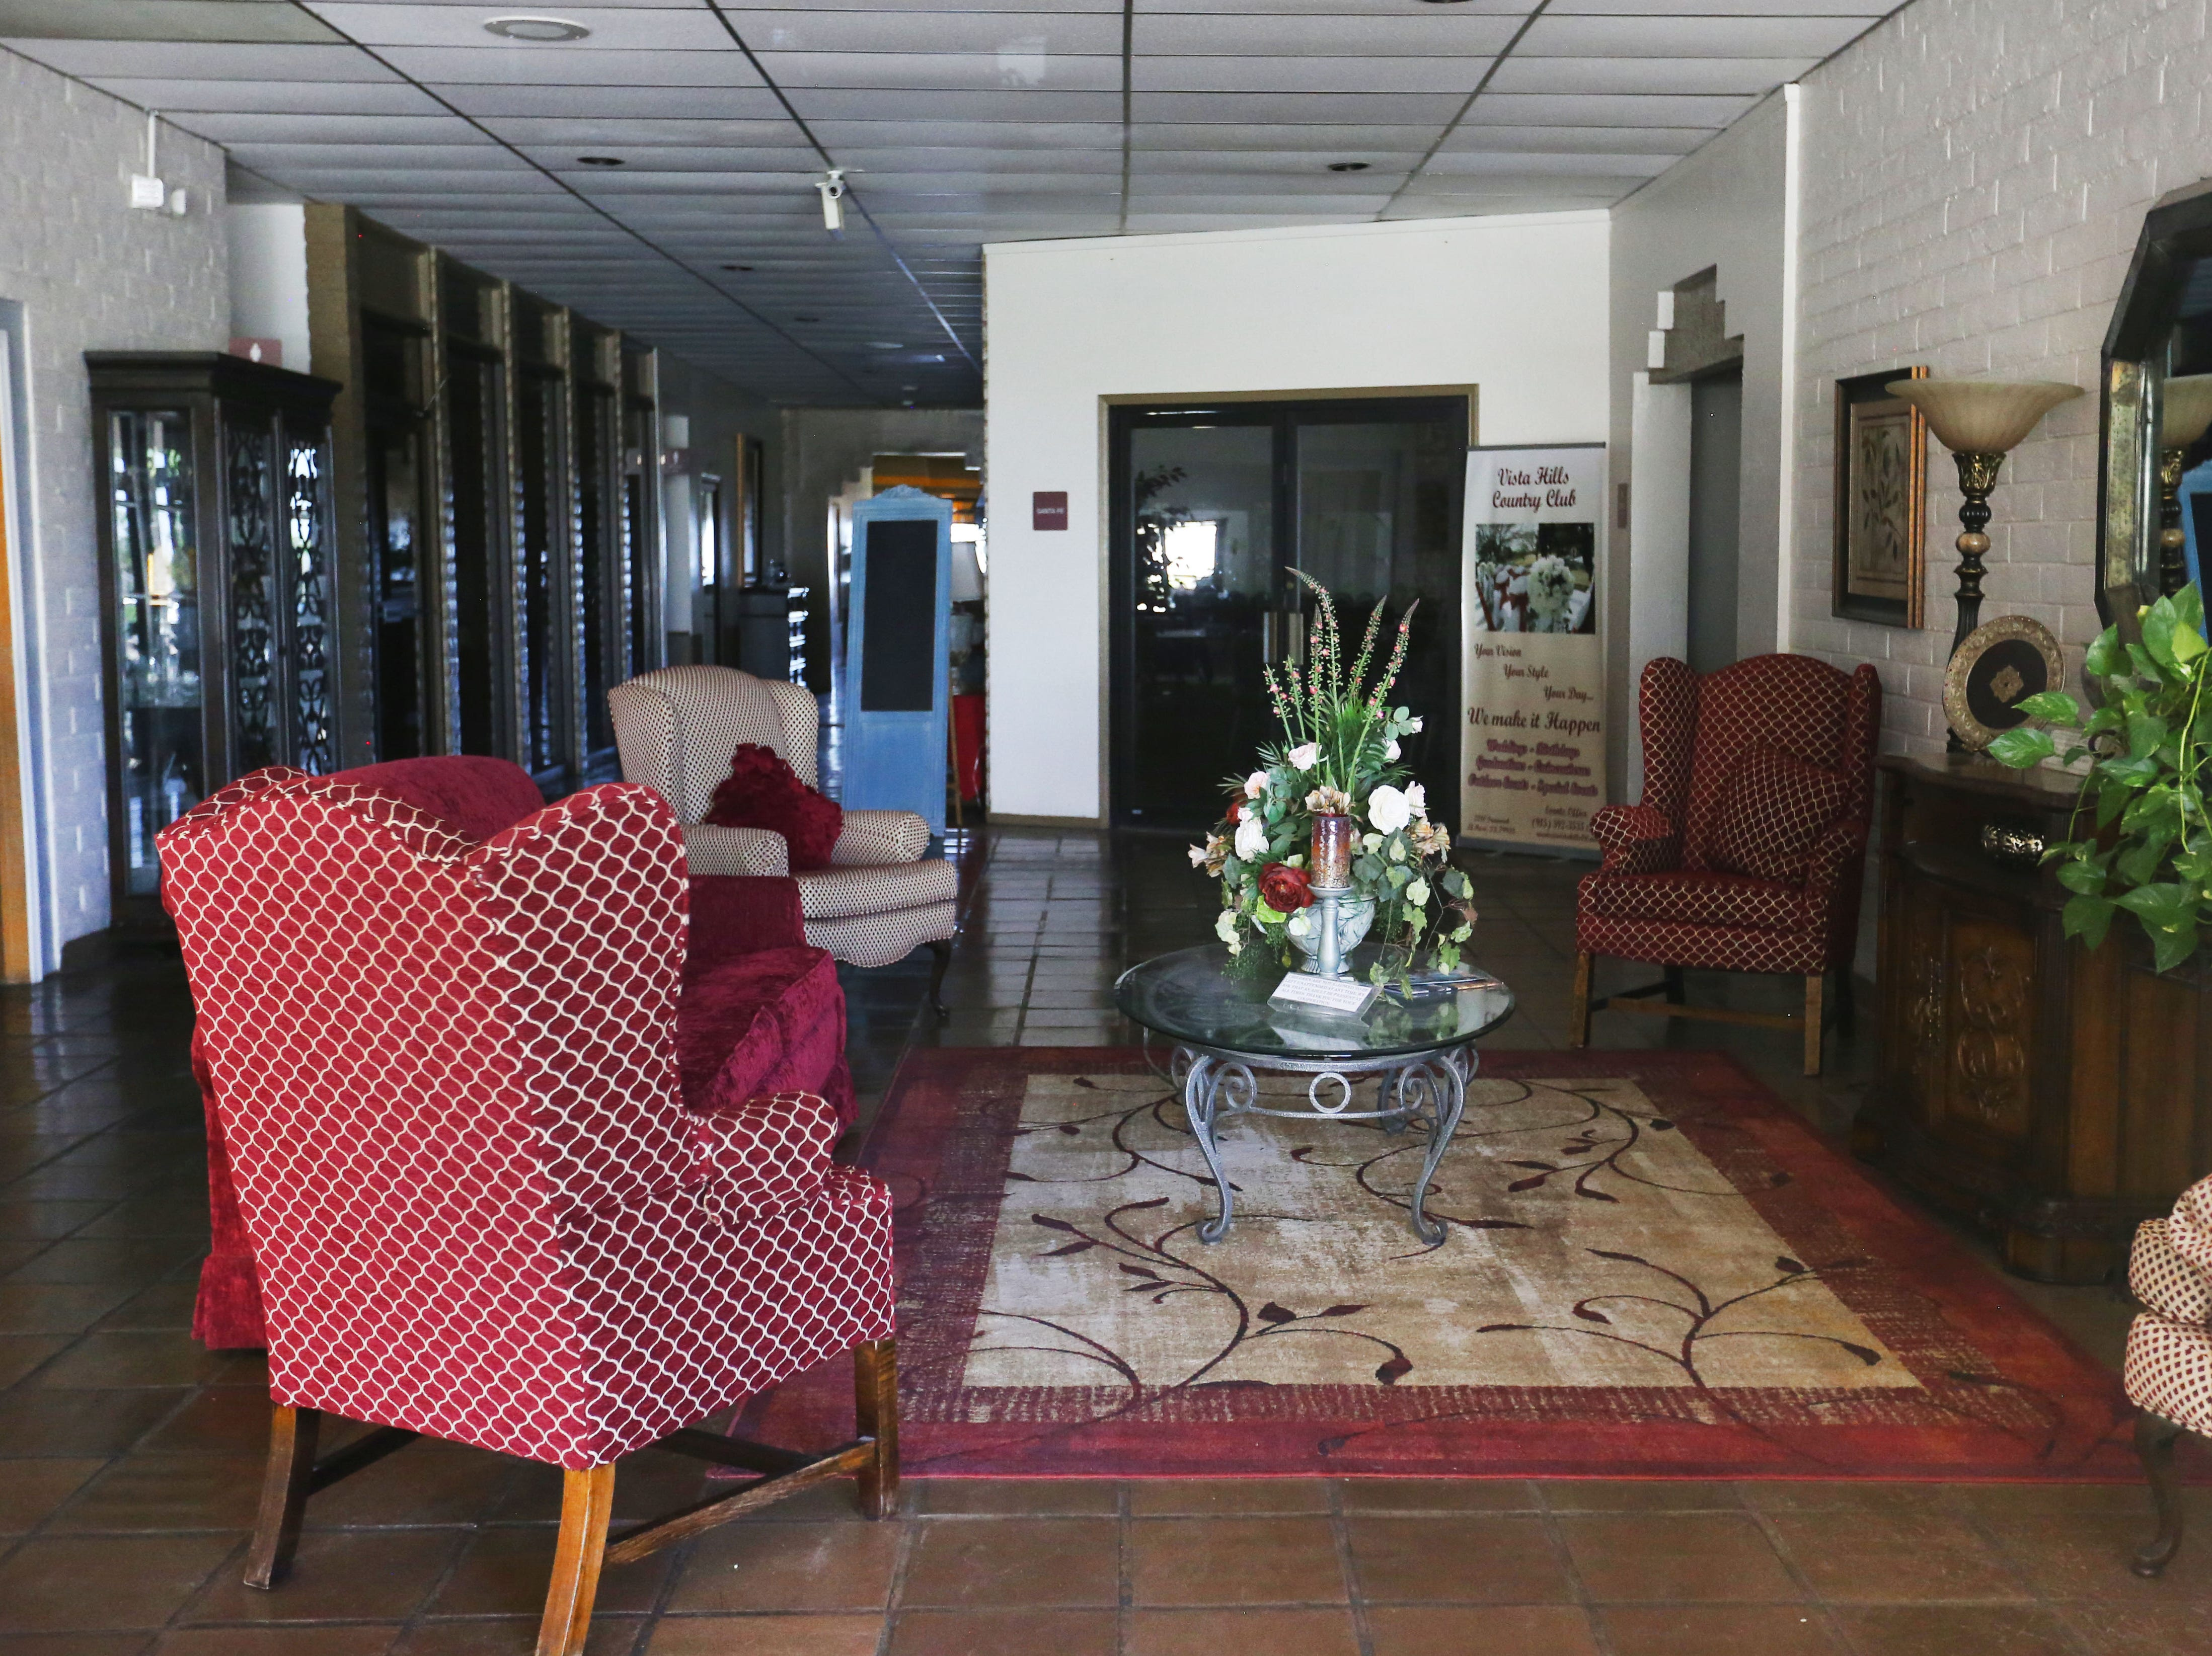 The entry way to Vista Hills Country Club sits vacant Wednesday, May 1, at 2210 Trawood Dr. in El Paso. The golf course closed Tuesday after 45Êyears of operation.